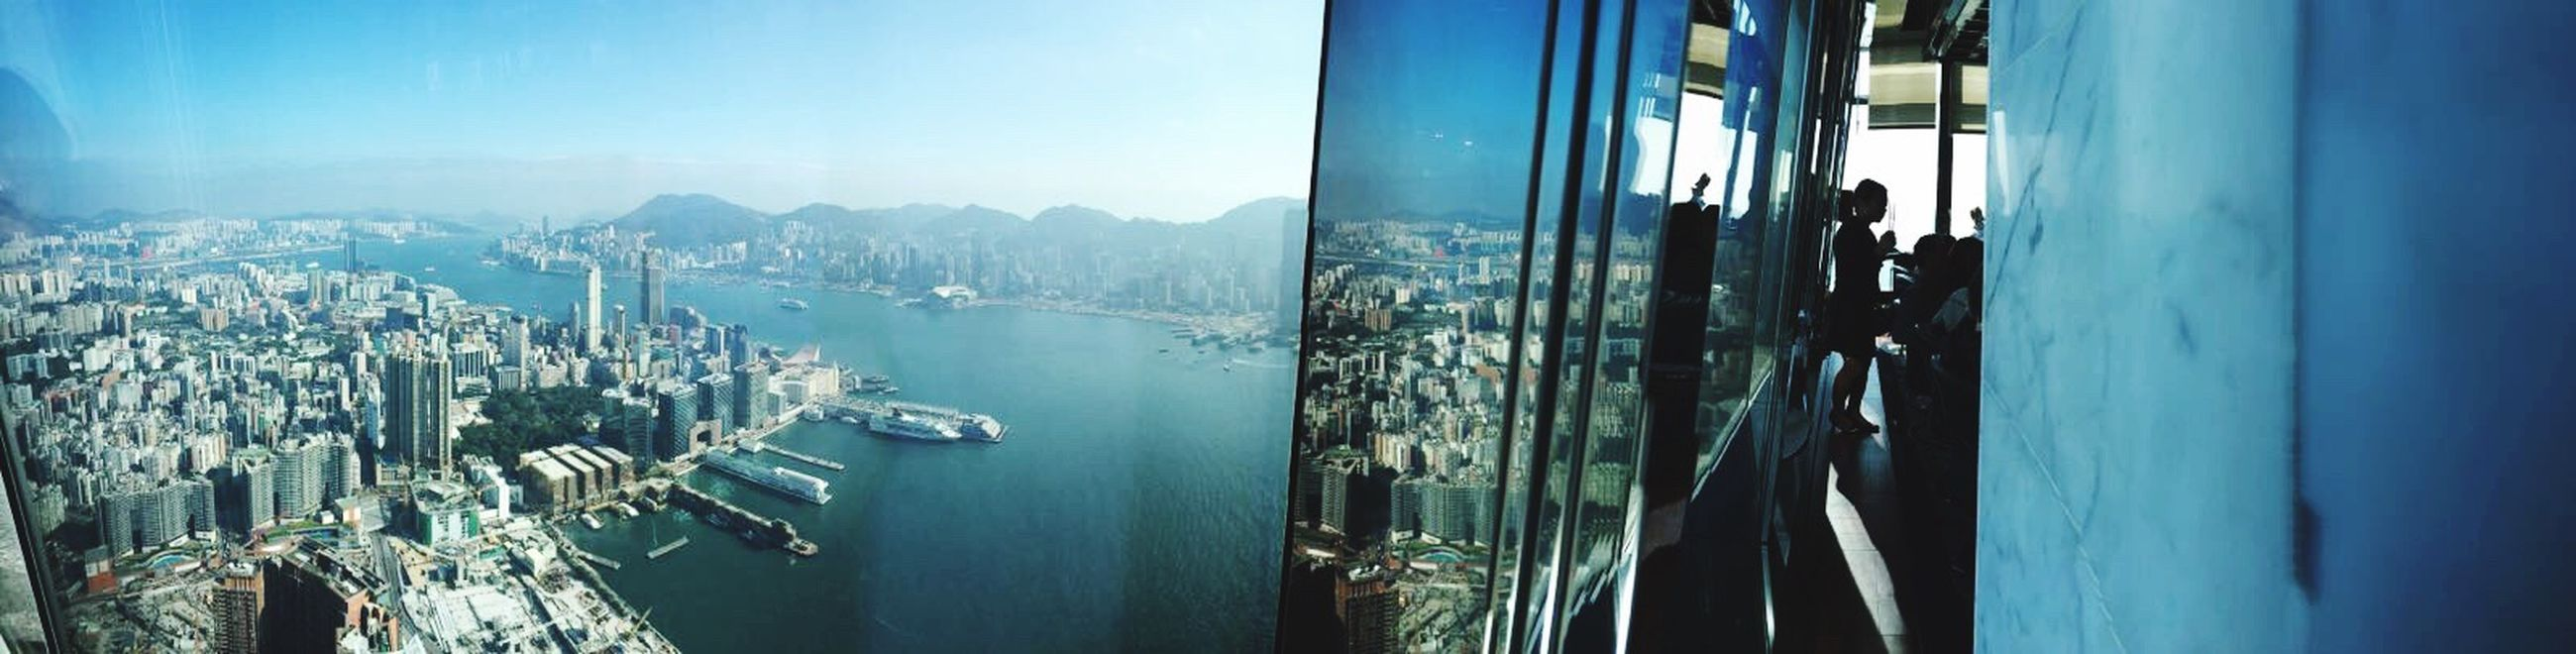 sea, panoramic, blue, reflection, transportation, mountain, architecture, sky, water, skyscraper, nautical vessel, building exterior, built structure, harbor, city, cityscape, scenics, outdoors, nature, business finance and industry, no people, day